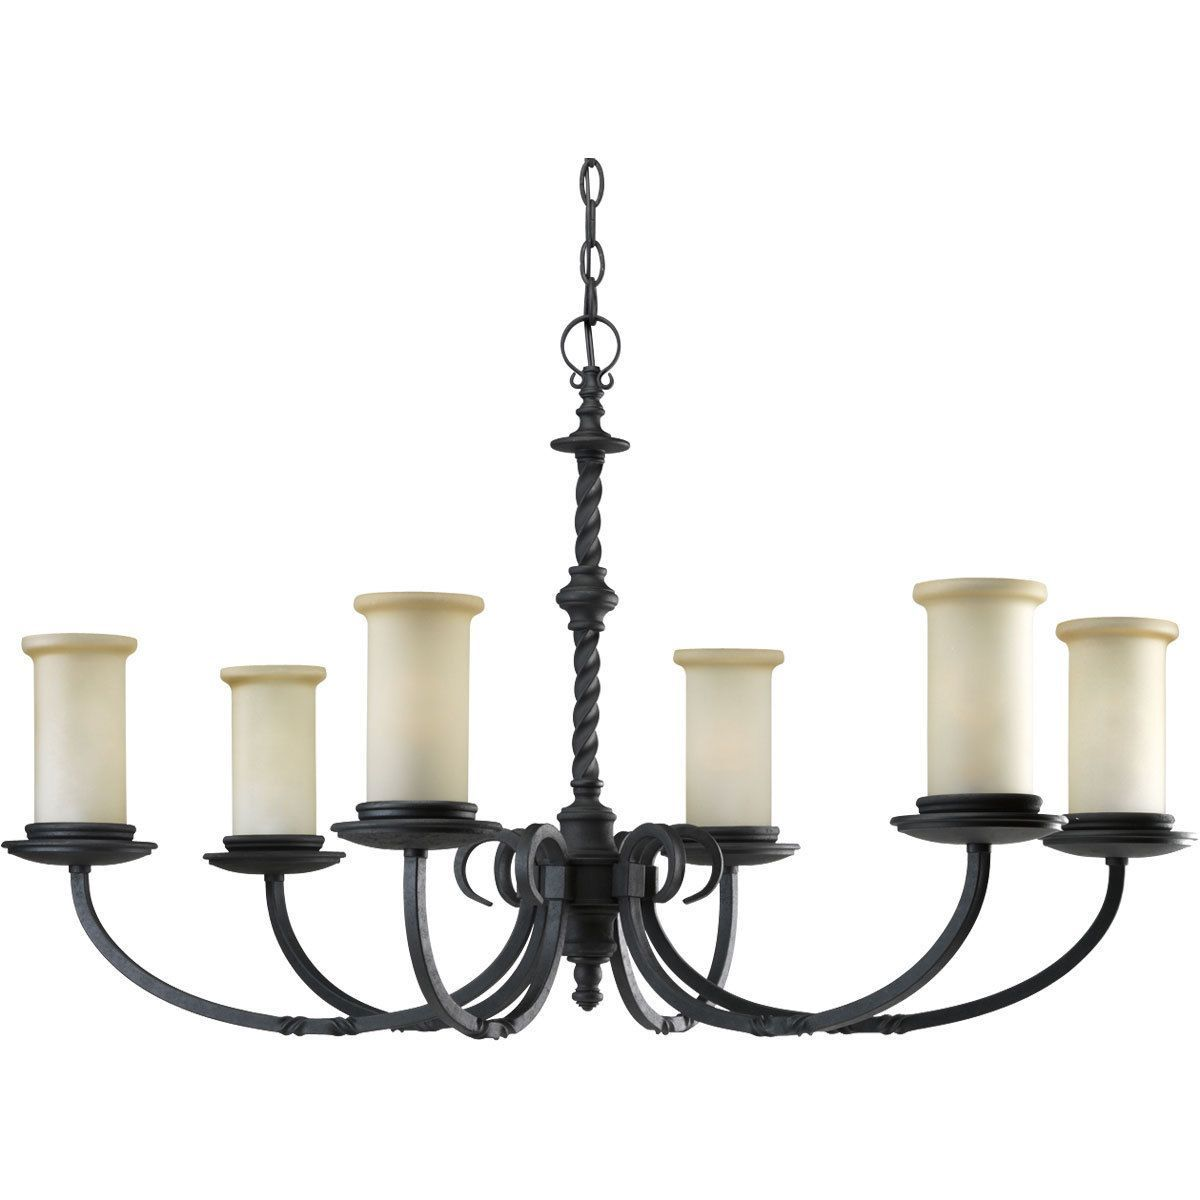 Progress lighting santiago collection 6 light forged black progress lighting santiago collection 6 light forged black chandelier lighting fixture santiago 6 light forged black chandelier glass aloadofball Image collections